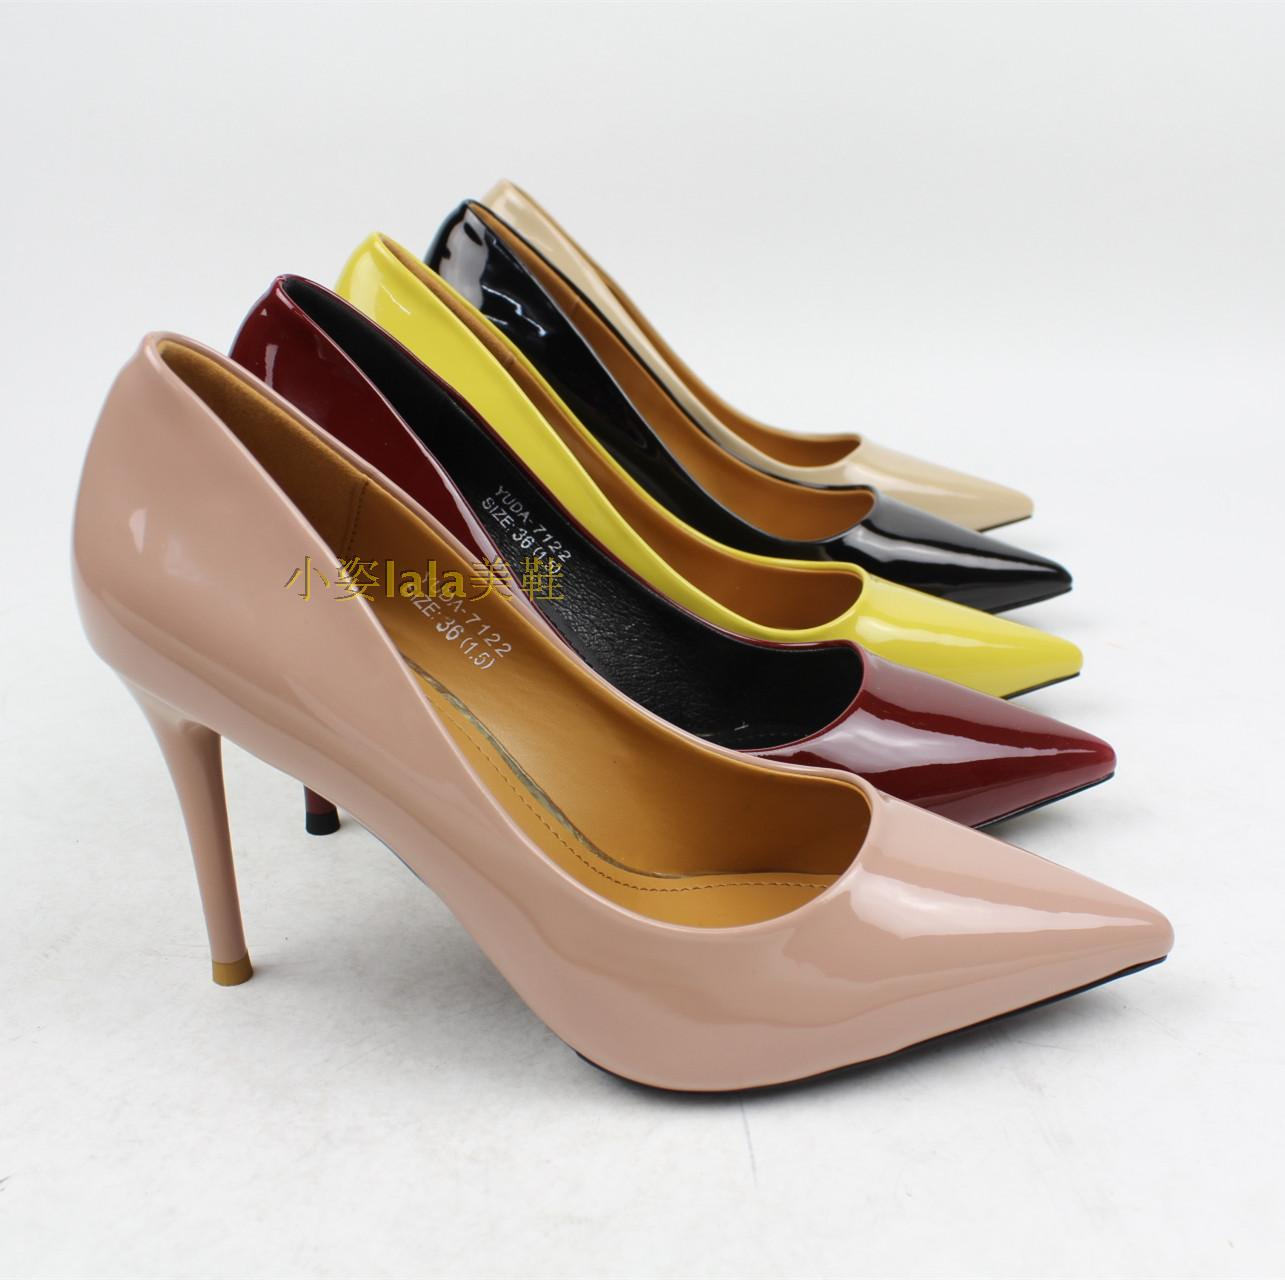 7122 genuine Yuda PU pointed leather surface light version of the classic simple style stiletto shoes shoes single bright colors